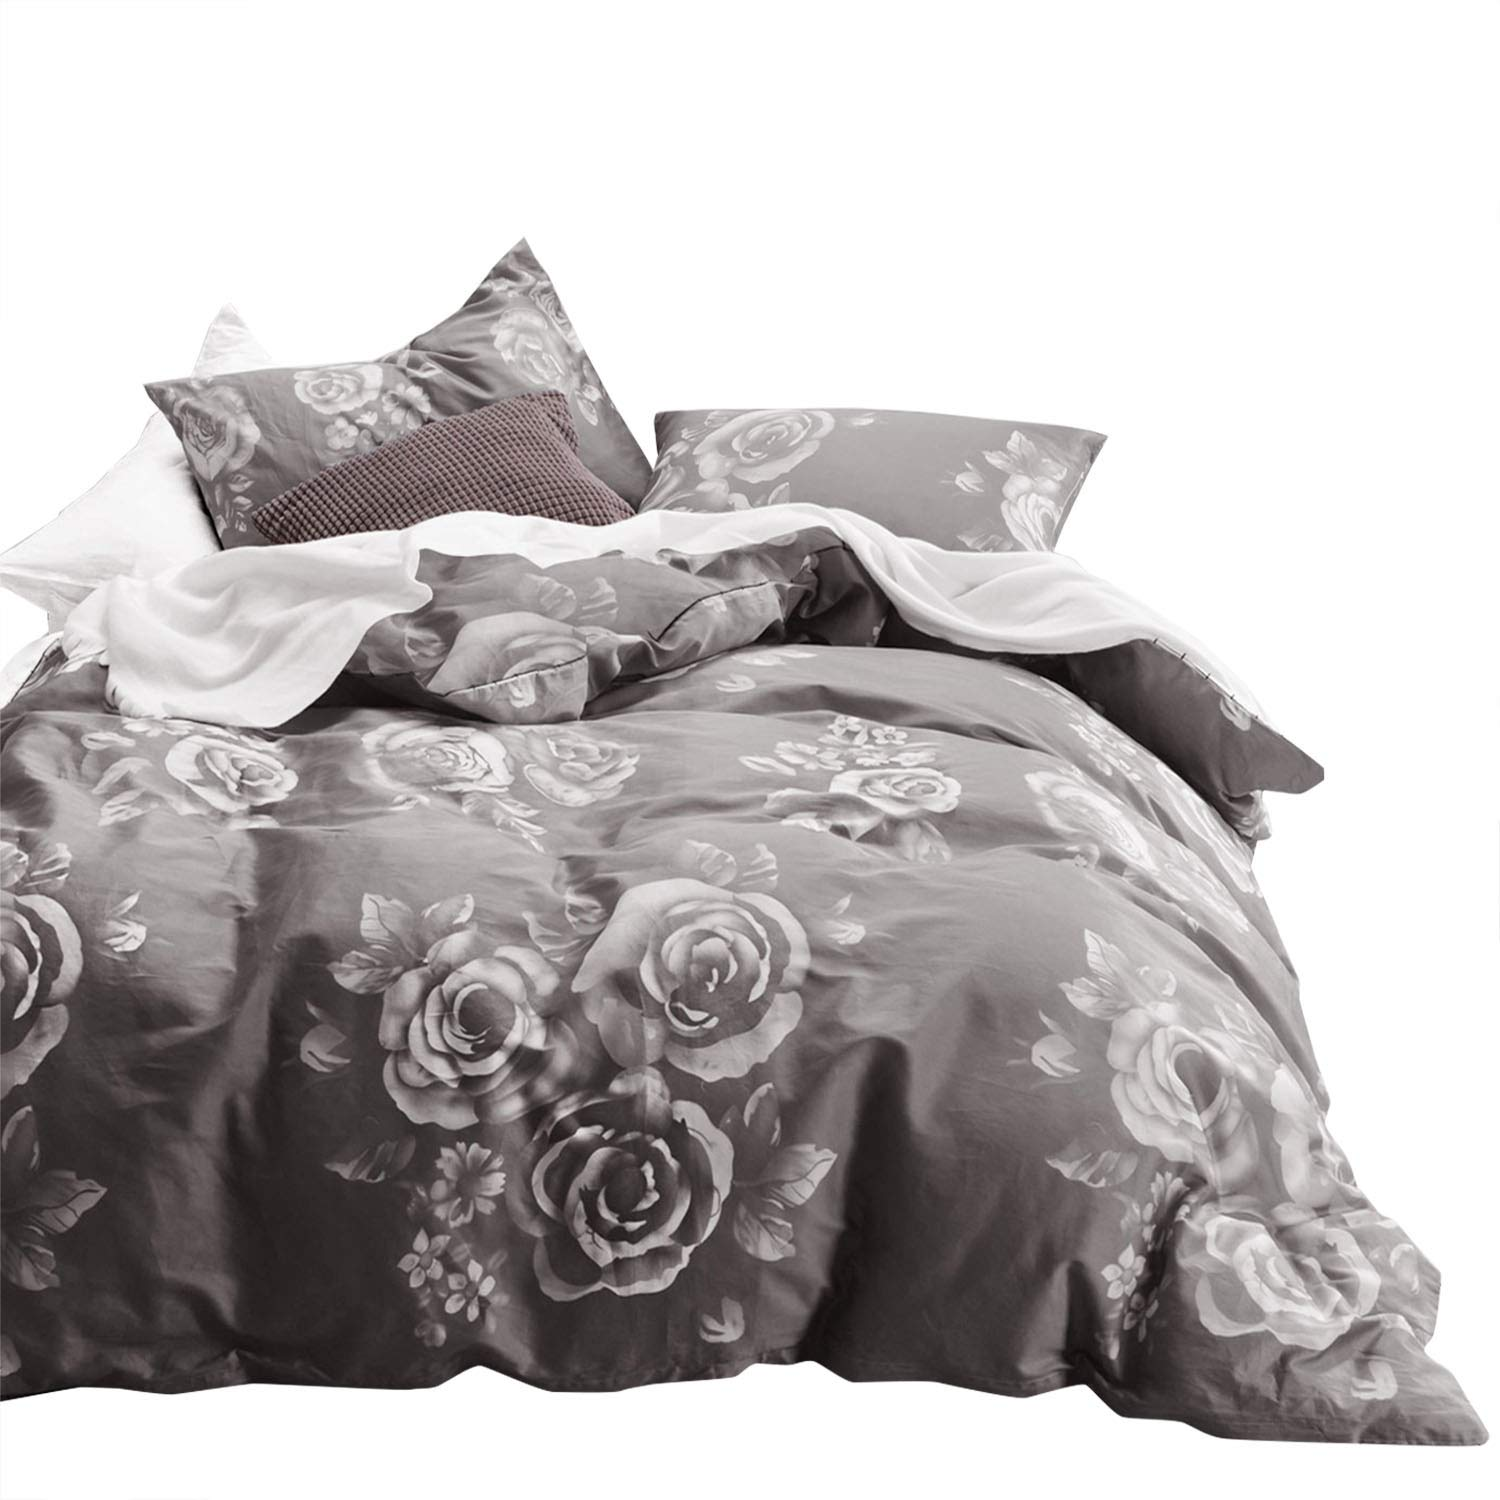 Wake In Cloud - Gray Floral Duvet Cover Set, 100% Cotton Bedding, White Rose Flowers Pattern Printed on Dark Grey, with Zipper Closure (3pcs, King Size)